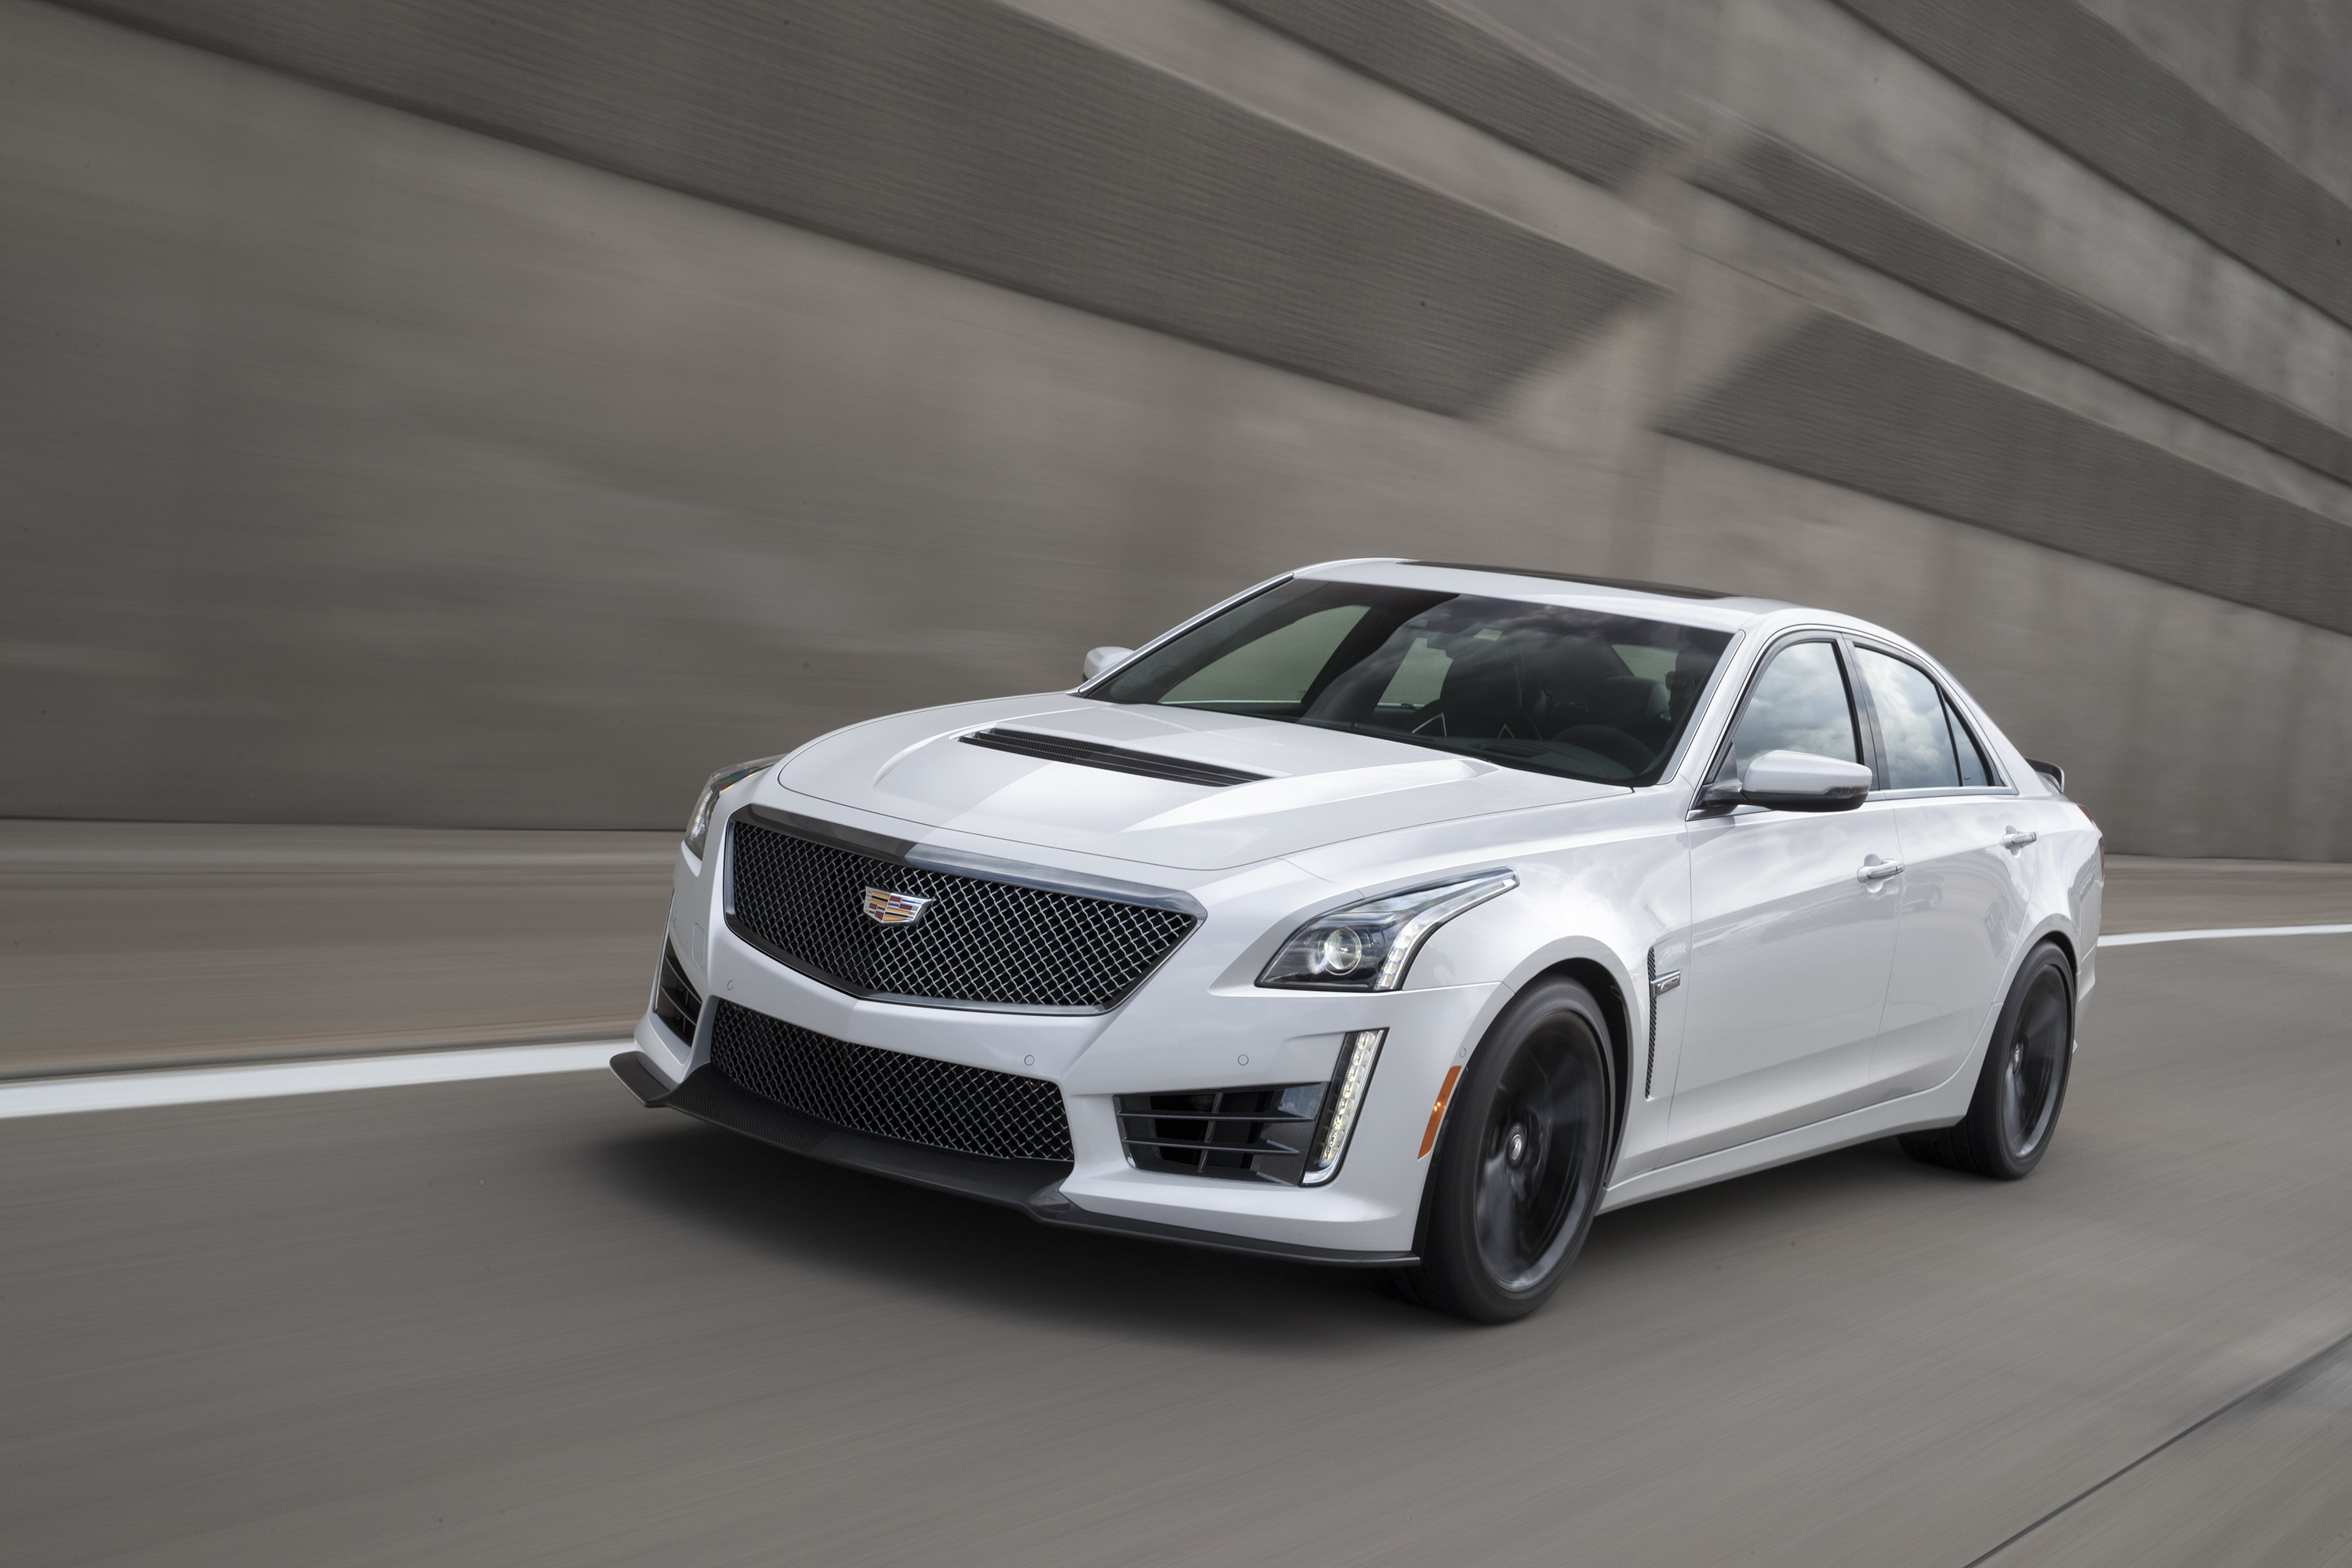 2017 Cadillac CTS-V With Carbon Black Sport Package | Top Speed